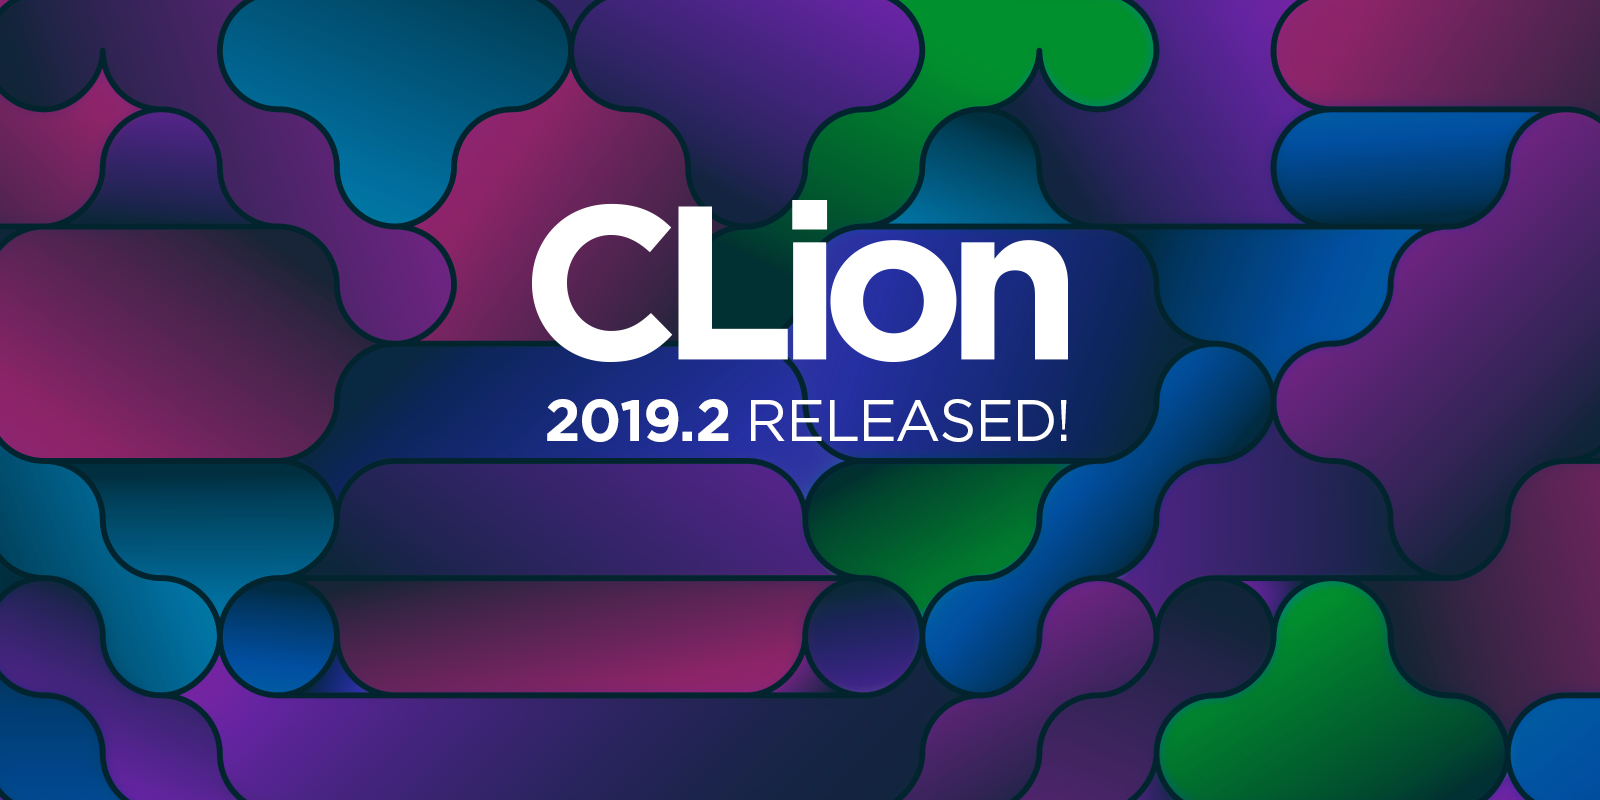 CLion 2019.2 released